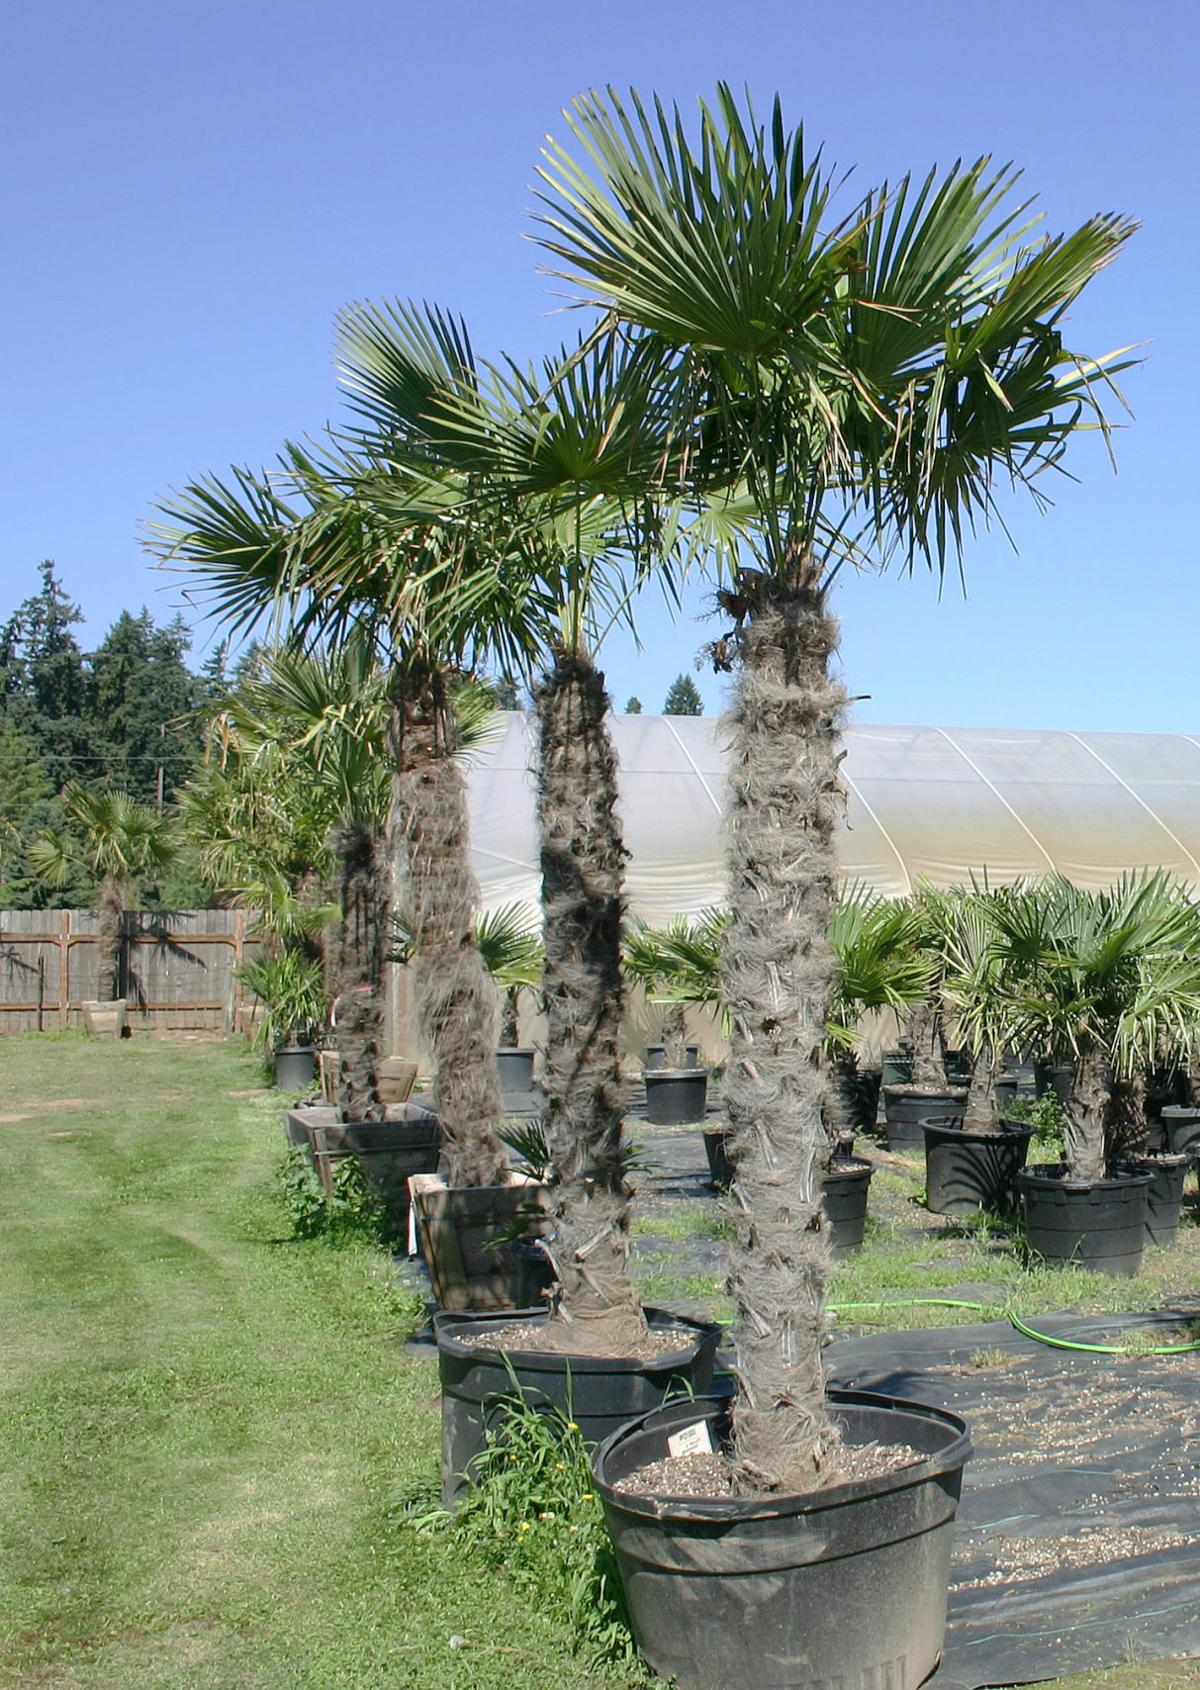 Nursery grows from interest in palms